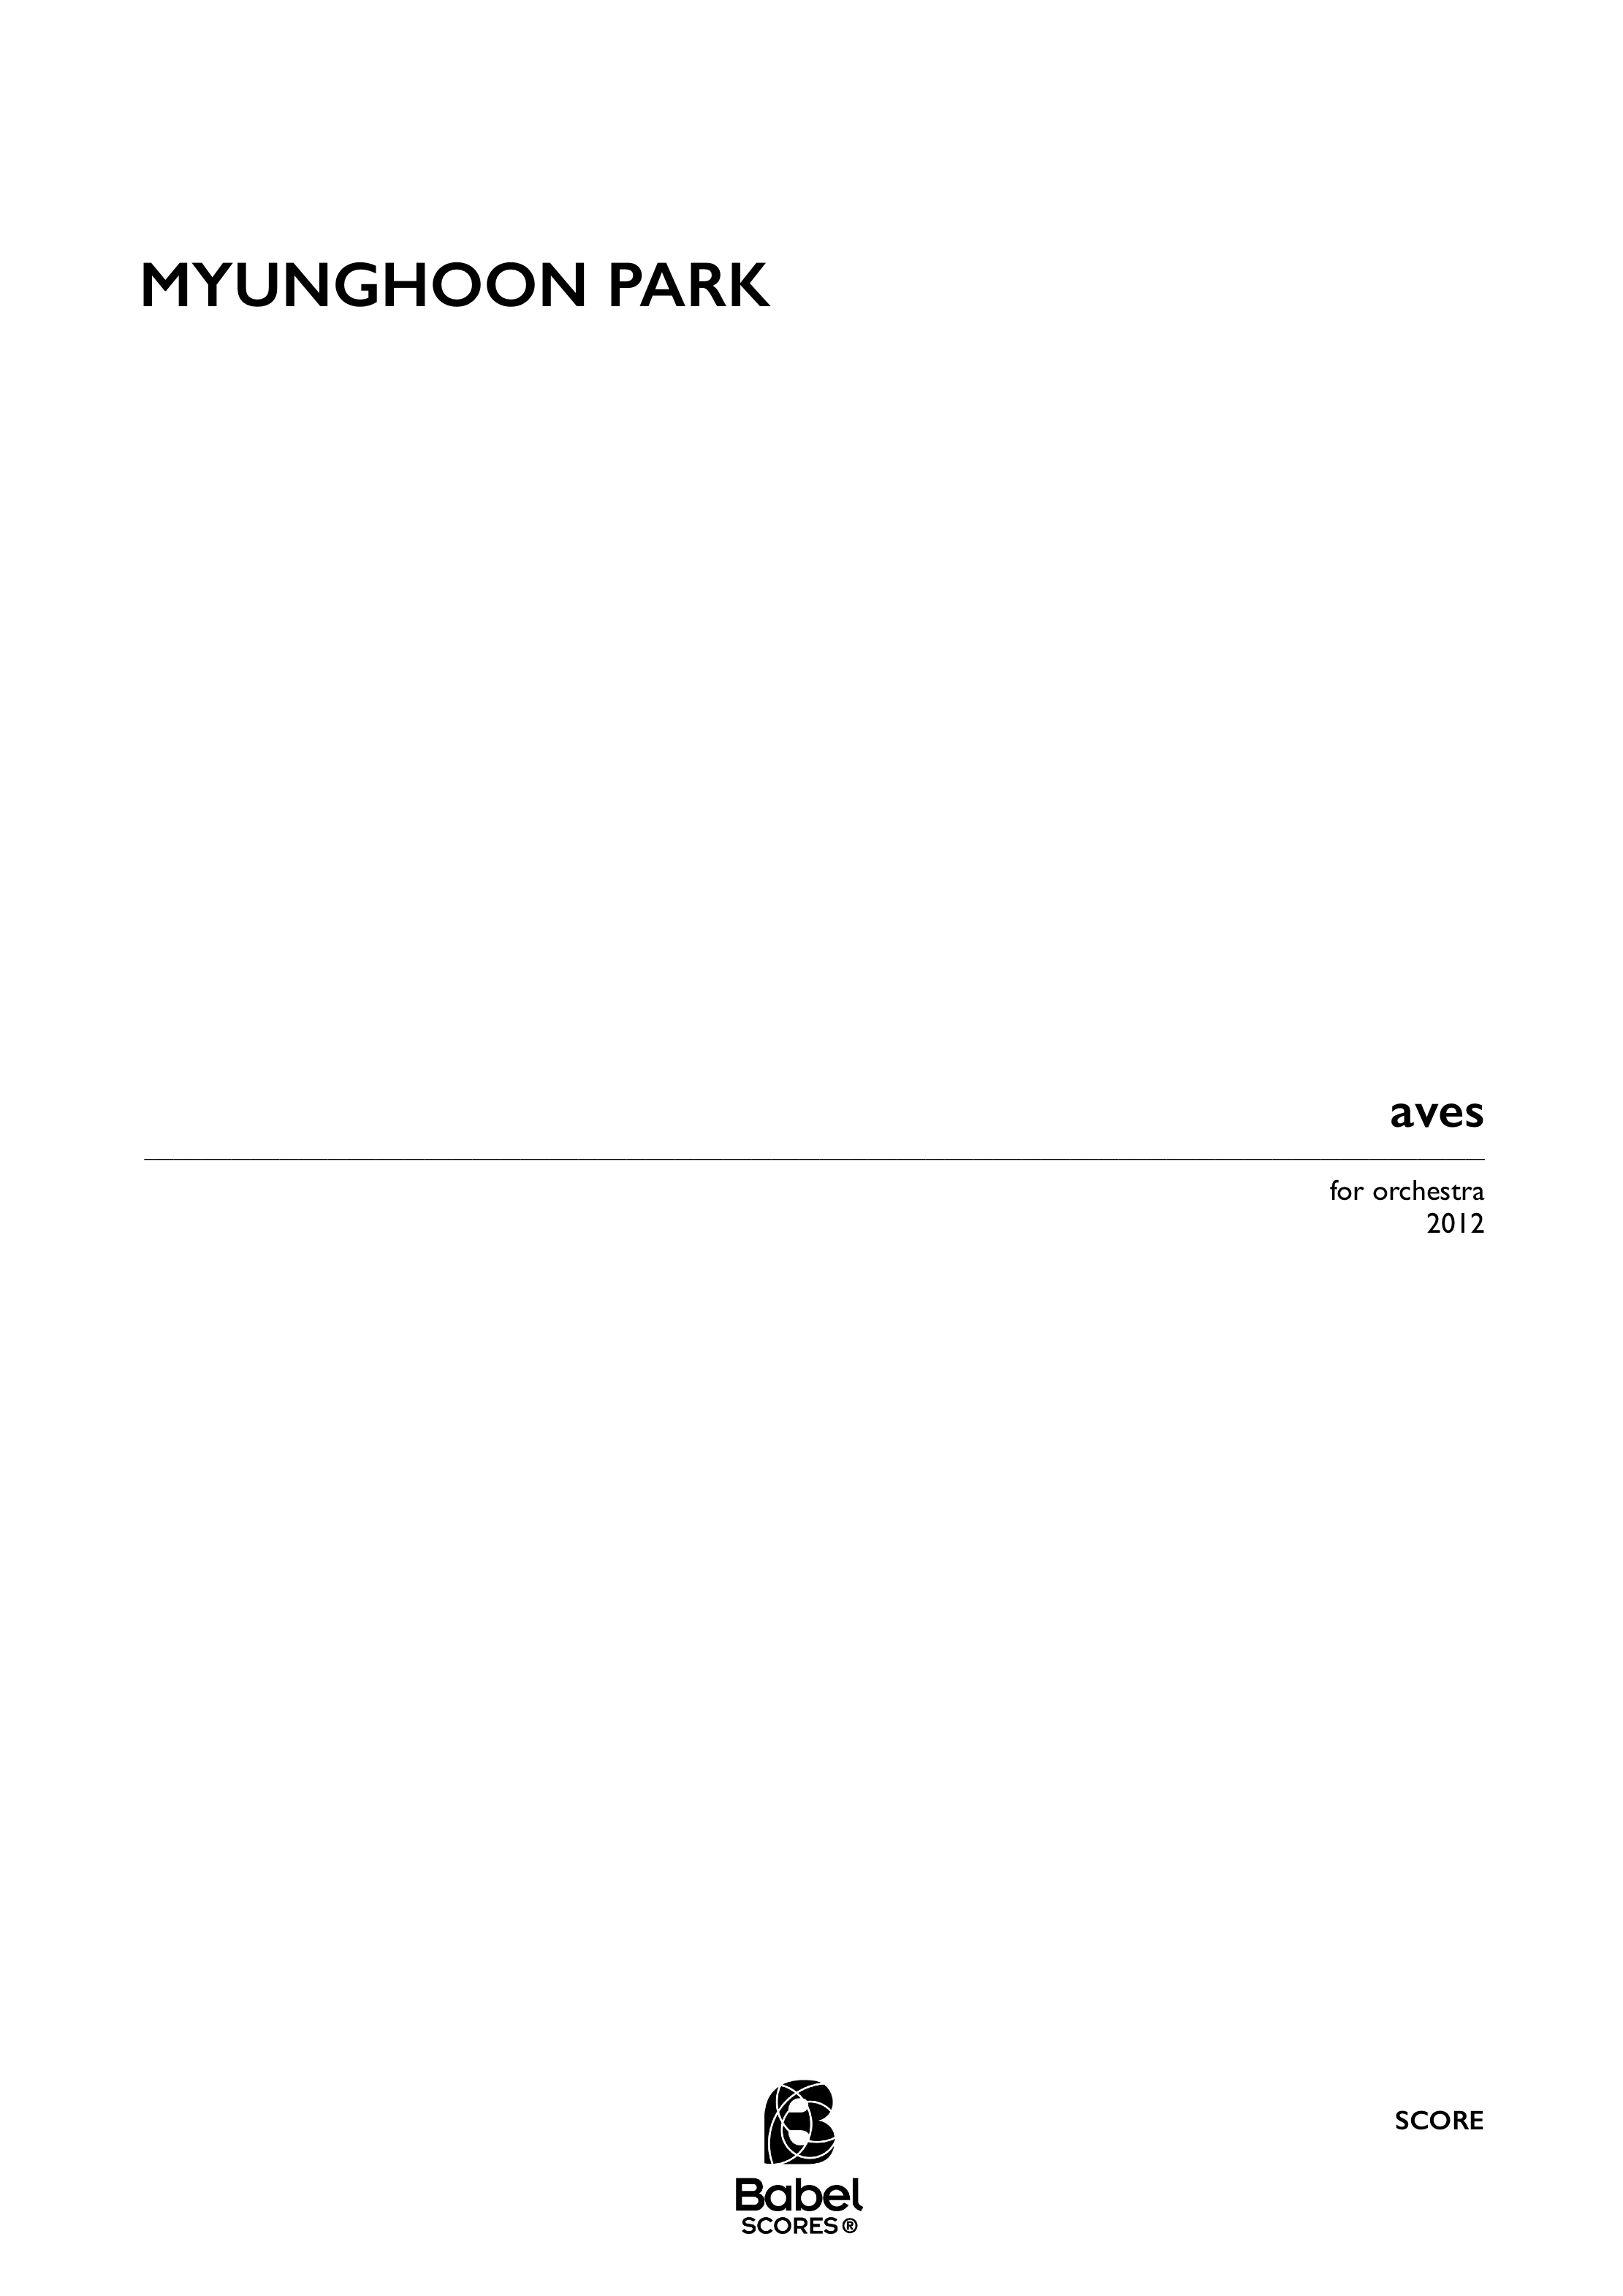 Score aves for orchestra Myunghoon Park A3 z